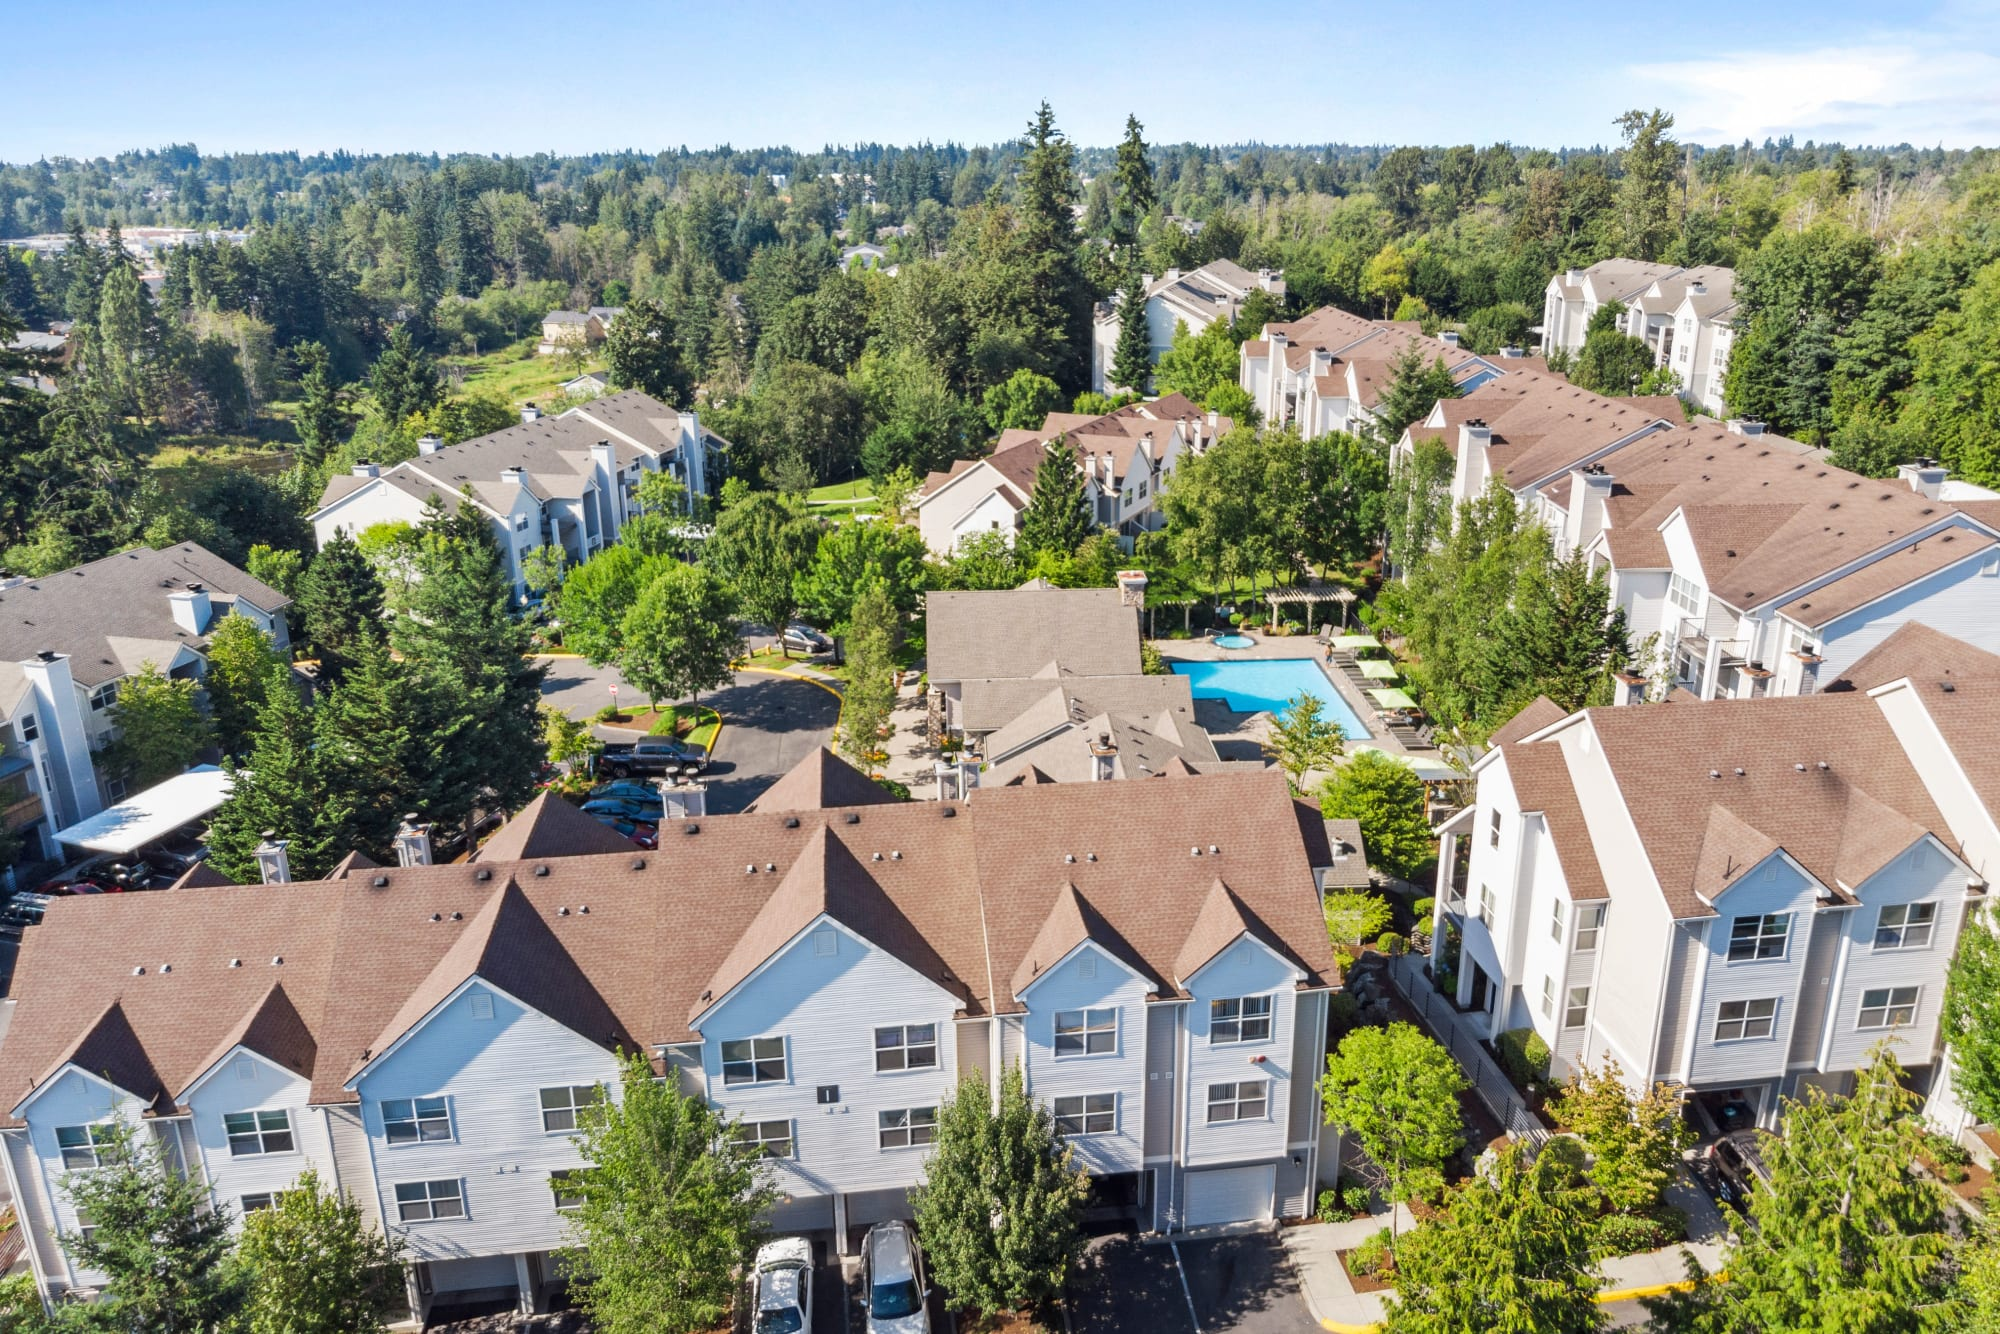 An aerial view of the property and surrounding areas at HighGrove Apartments in Everett, Washington